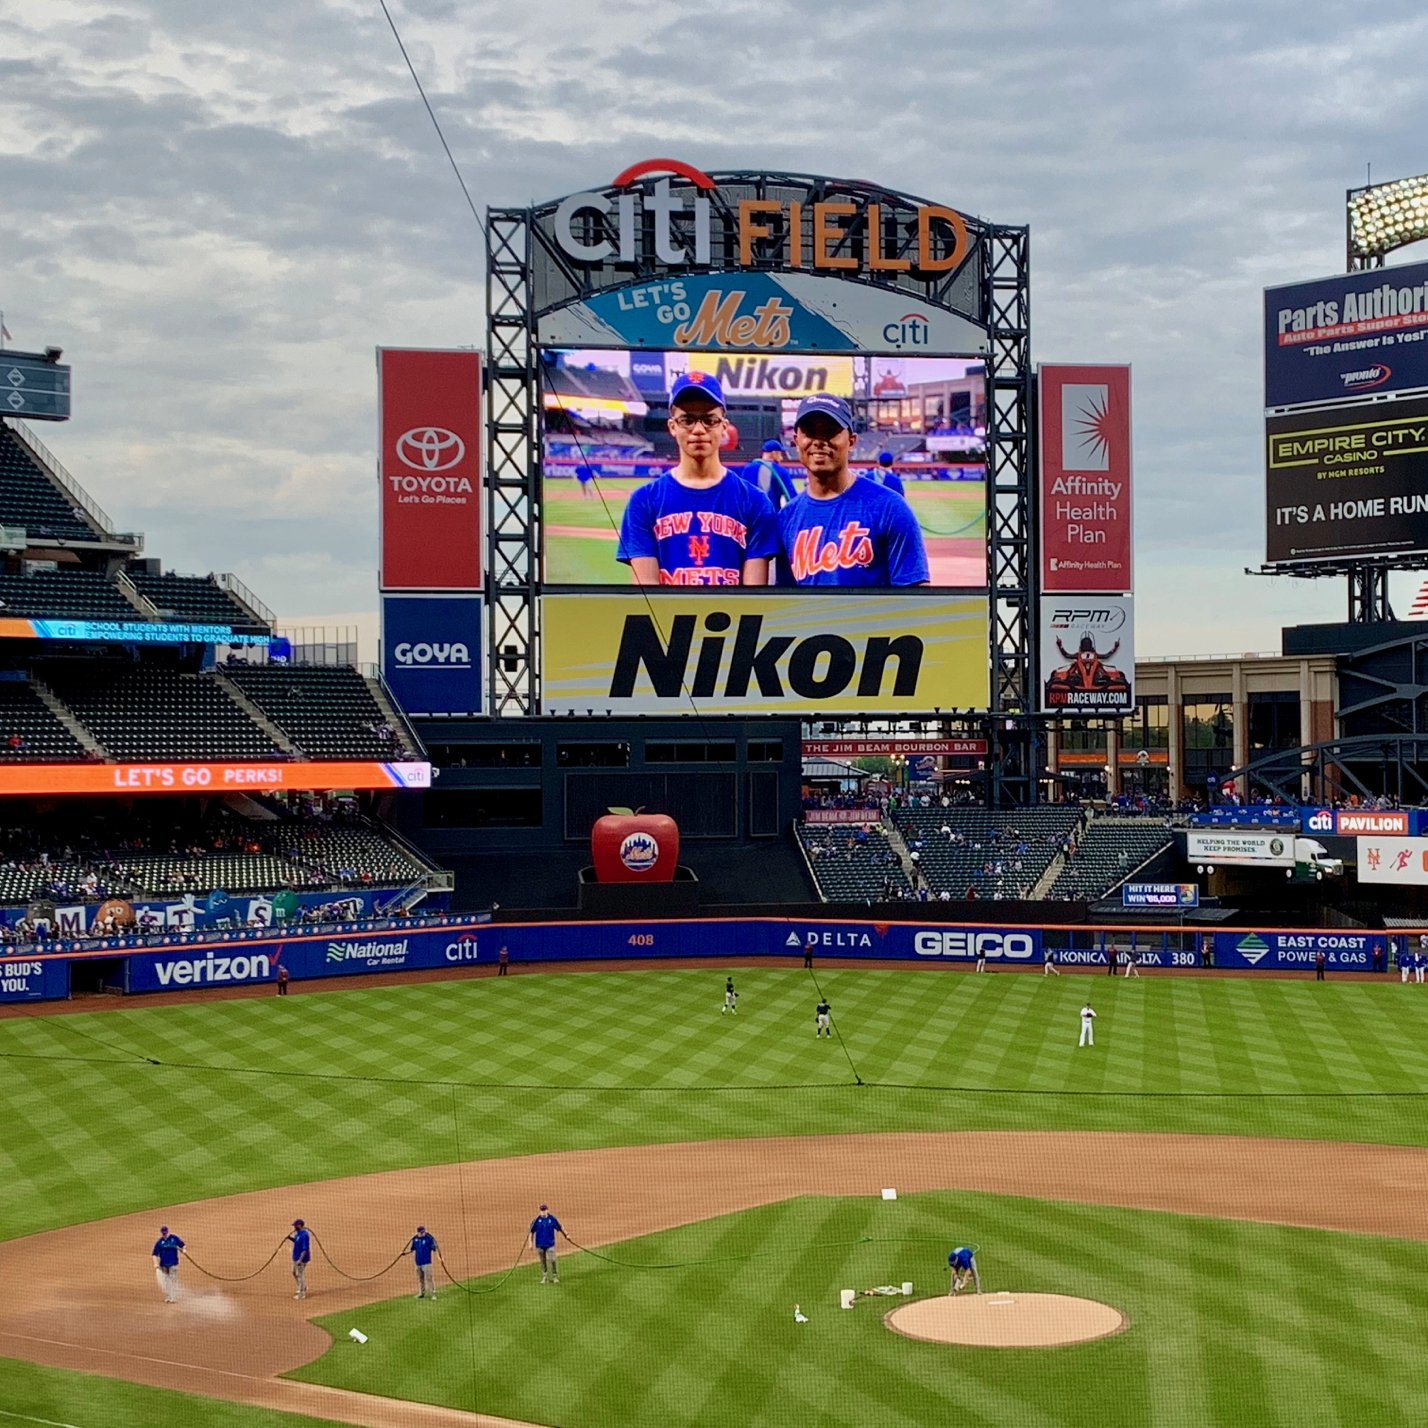 Raul and Daniel spotlighted on the jumbotron at Citi Field